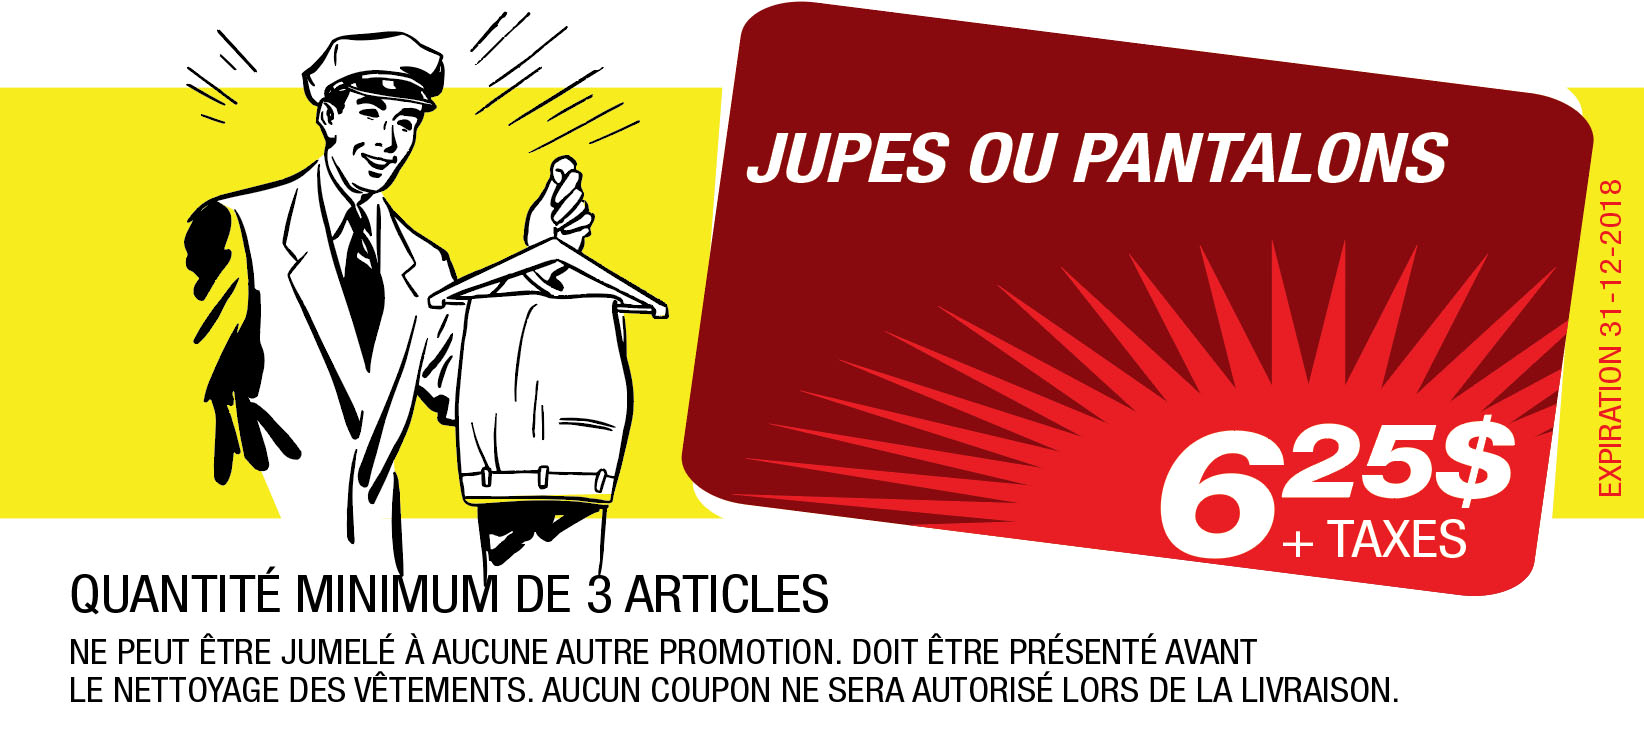 NettoyeurEclair-Jupes-Expiration31082018